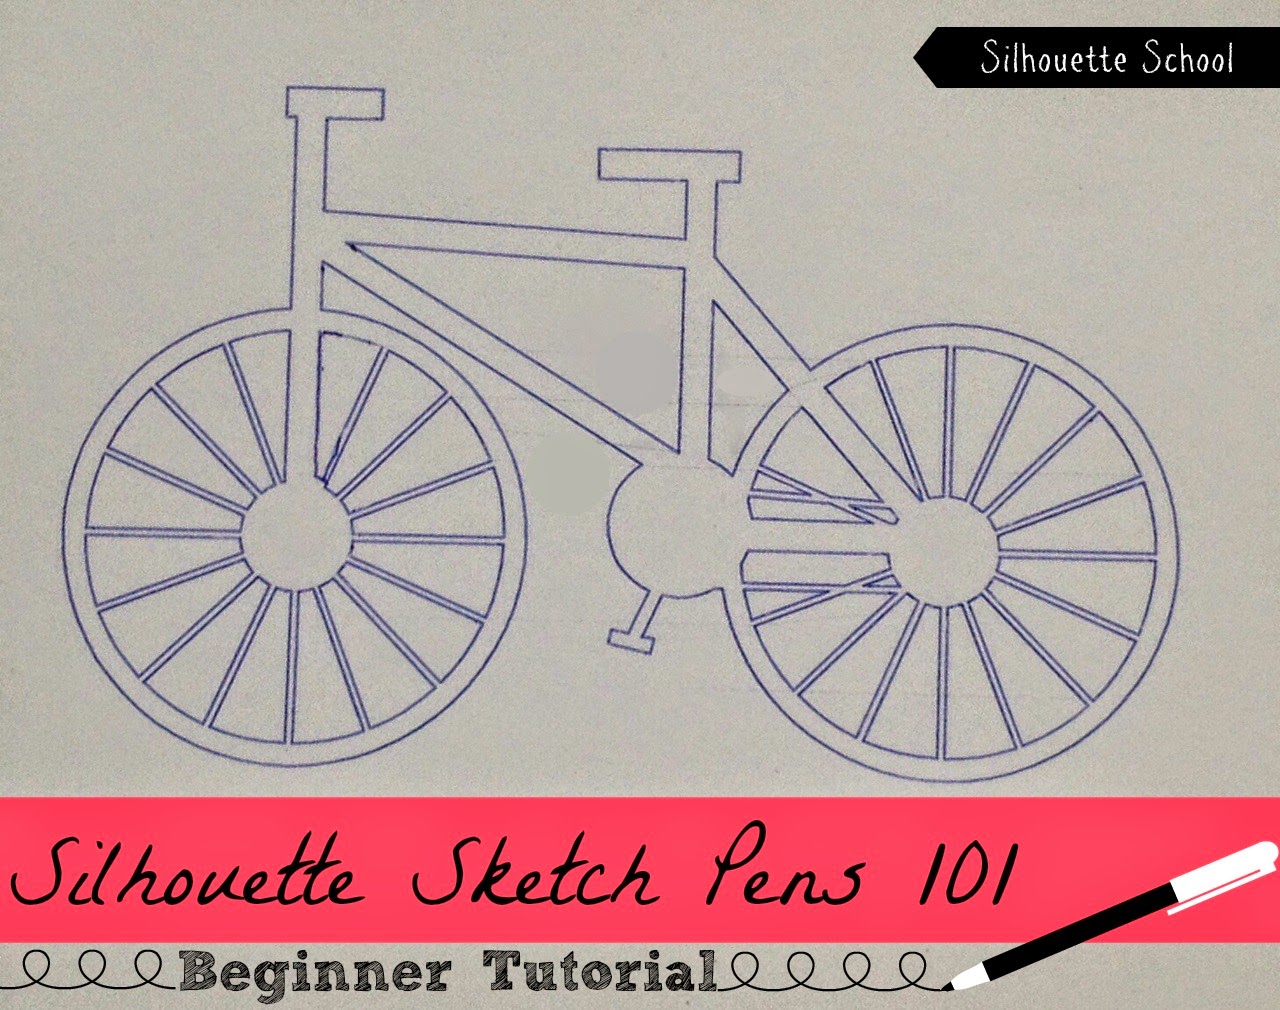 http://www.silhouetteschool.blogspot.com/2014/04/silhouette-sketch-pens-tutorial-for.html